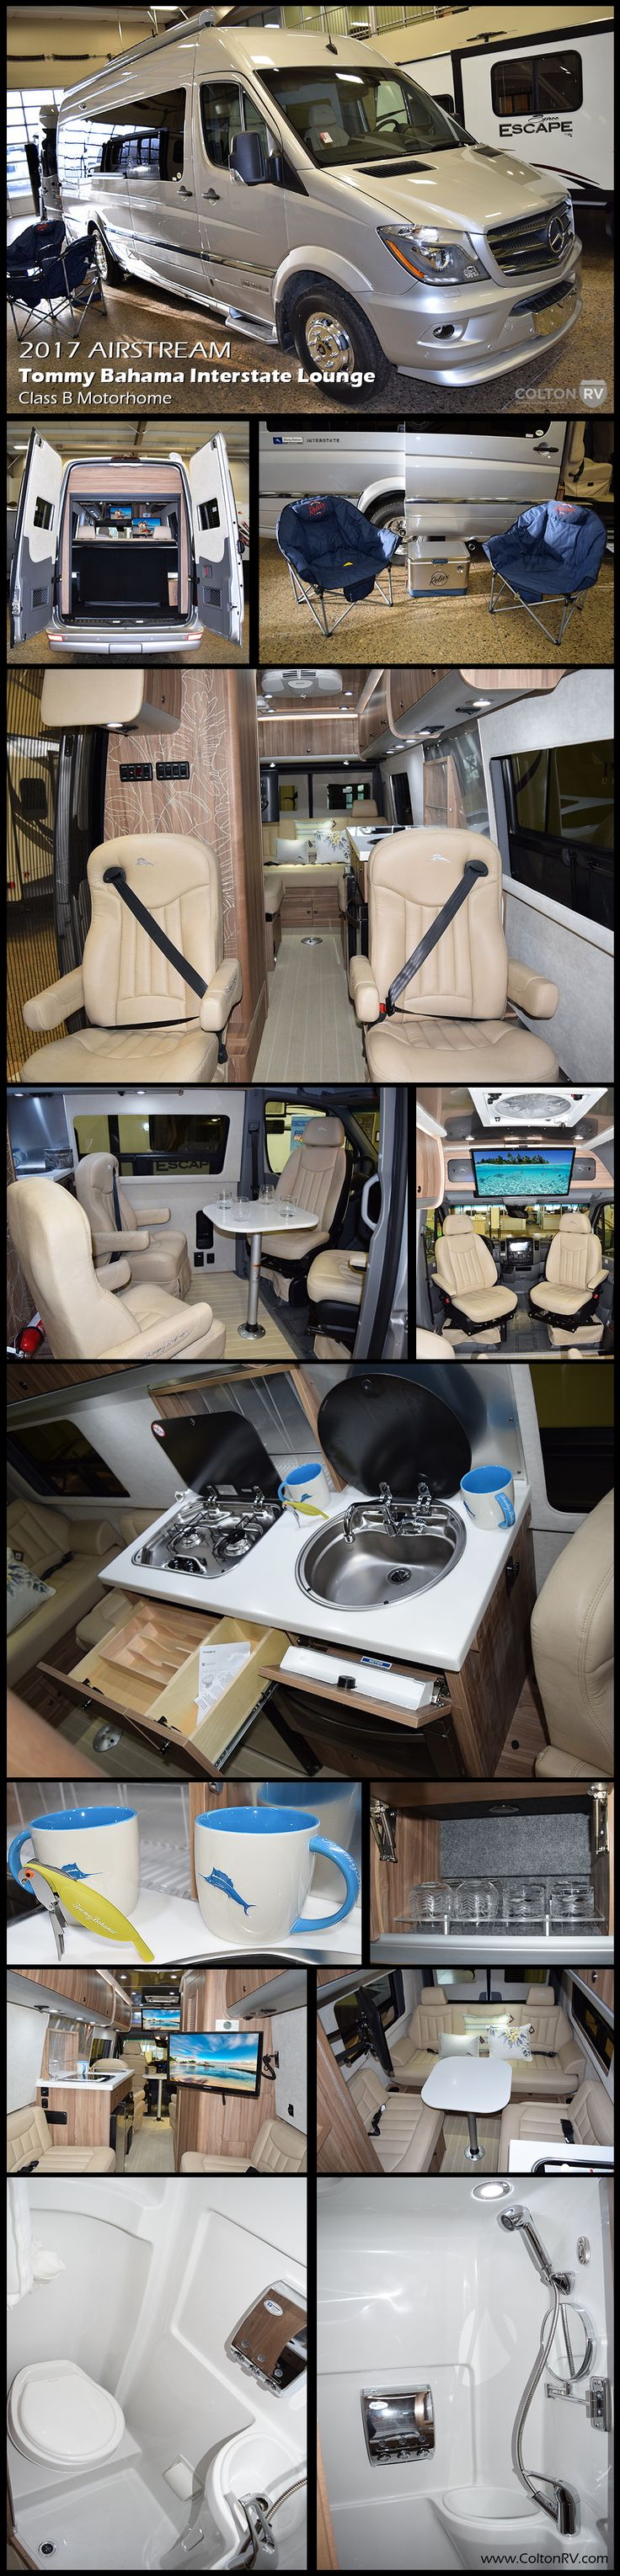 Island life is here. The new Special Edition Tommy Bahama Touring Coach has arrived. Tommy Bahama and Airstream bring iconic quality and comfortable ease together beautifully in this 2017 Airstream Tommy Bahama Interstate Lounge Class B Motorhome. Open the rear doors to bring in the ocean breeze and enjoy the powered wood blinds and Tommy Bahama décor accents. The new special edition is built for relaxation and adventure.